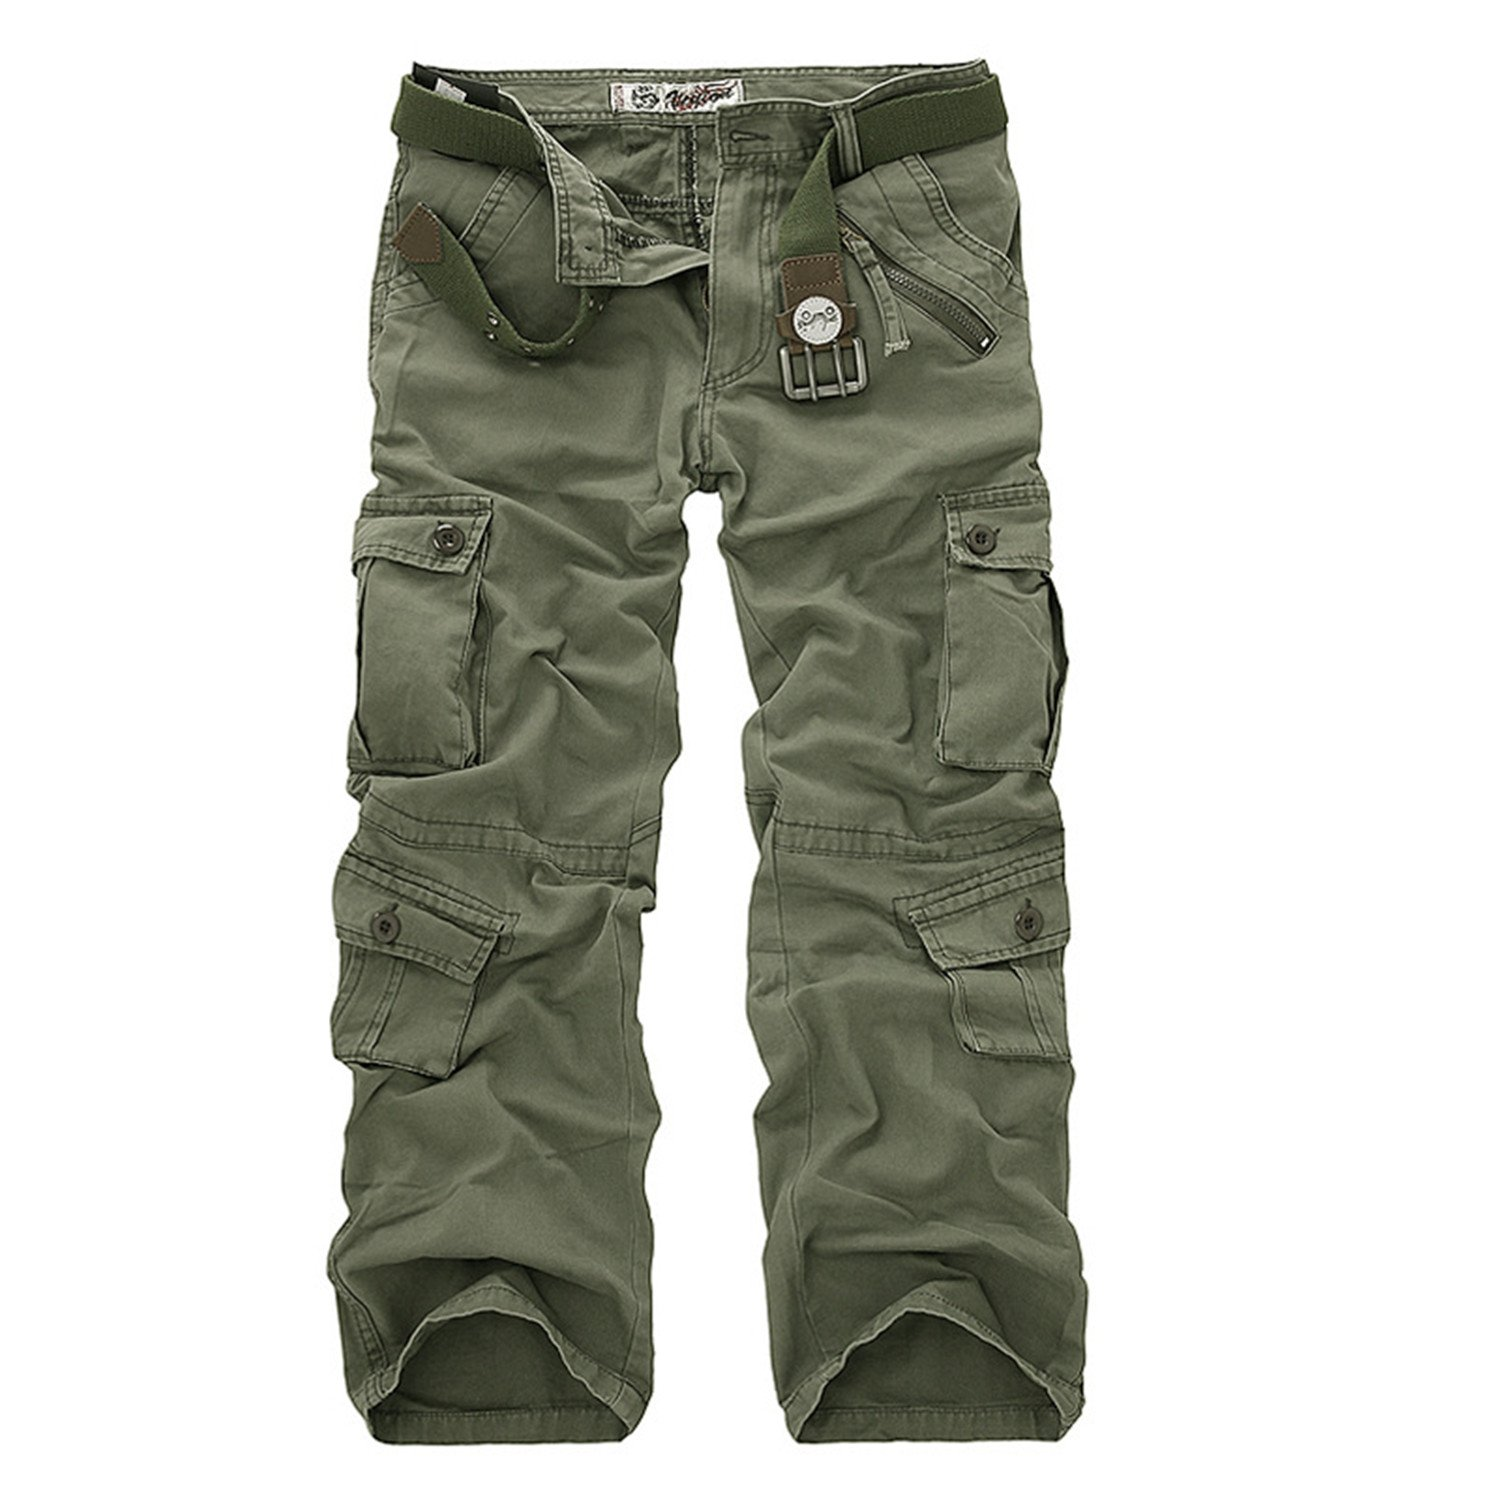 8b2430e6e80e Grass Green Ivan Johns Pants Multi-Pocket Military Military Military Army  Camouflage Pants Men Casual Cotton Straight Water Washed 40 a8cd21